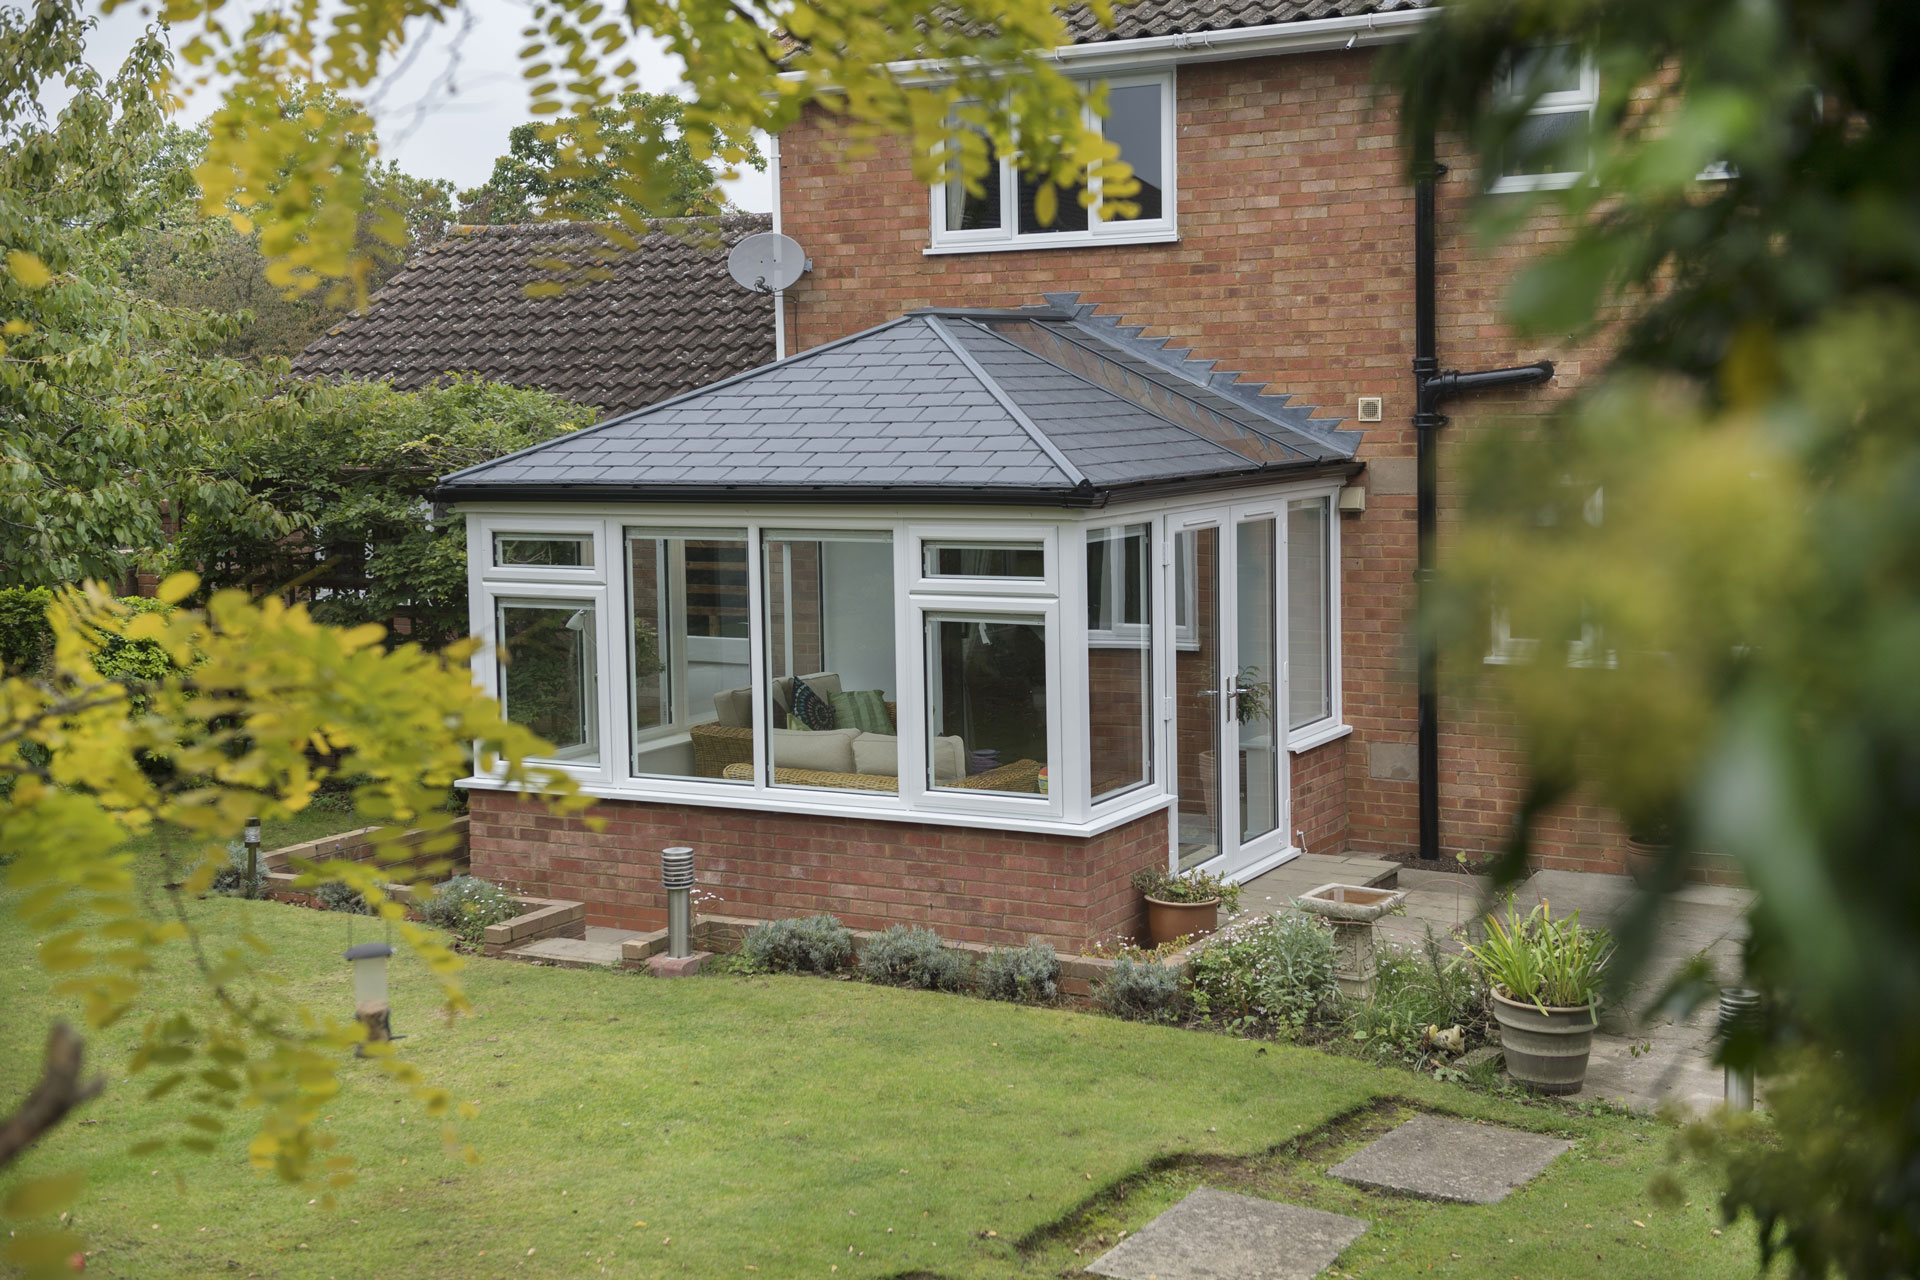 Tiled Roof Extension Prices Kenilworth Ultraroof Extension